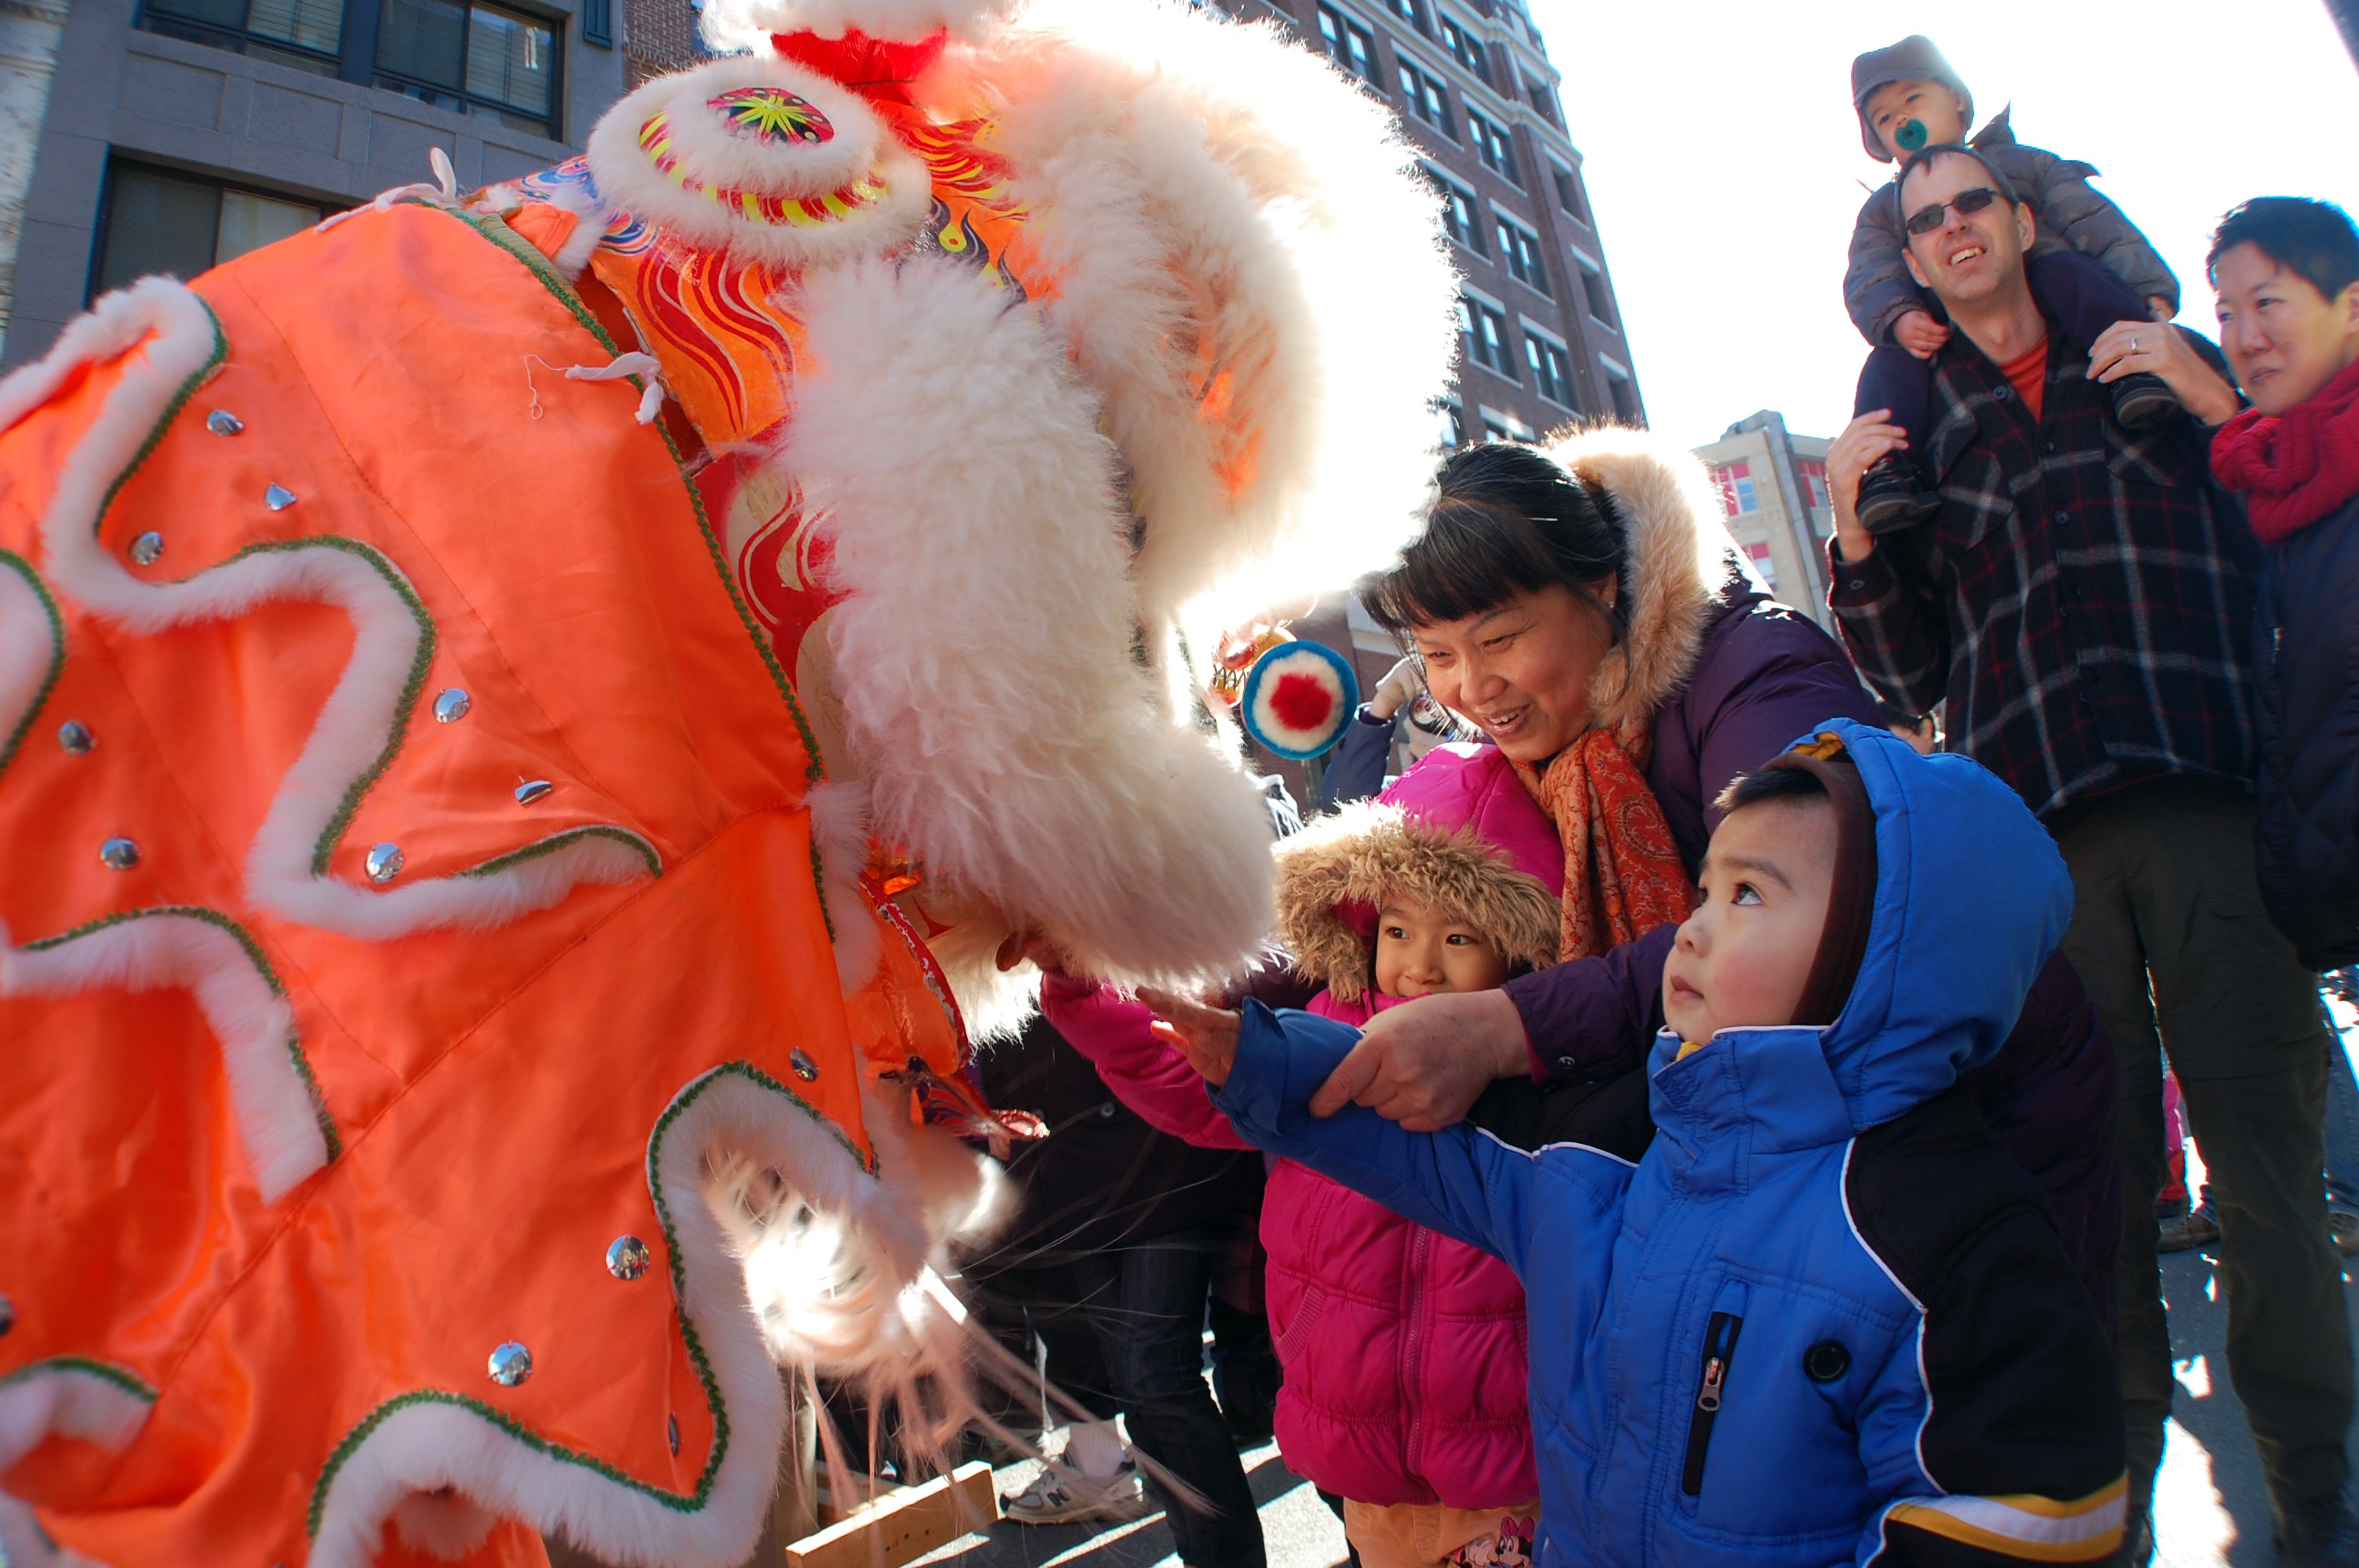 Children going up to touch the lion after his dance